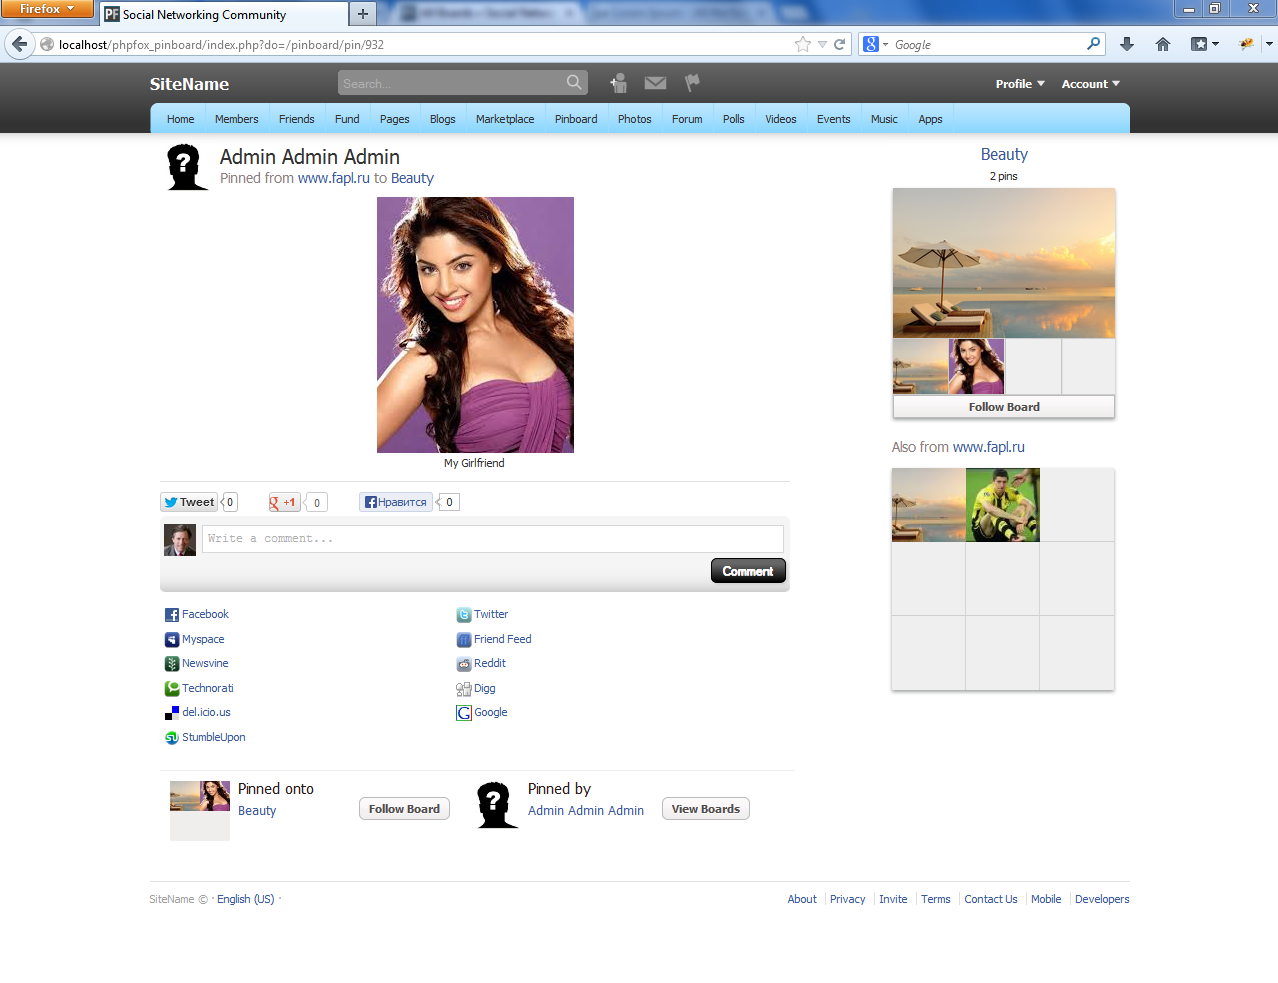 phpfox dating site Plenty of fish online is a social network designed for meeting new people, make your own profile discover, share, and connect with videos, photos, search, audios, messages, chat, and more.